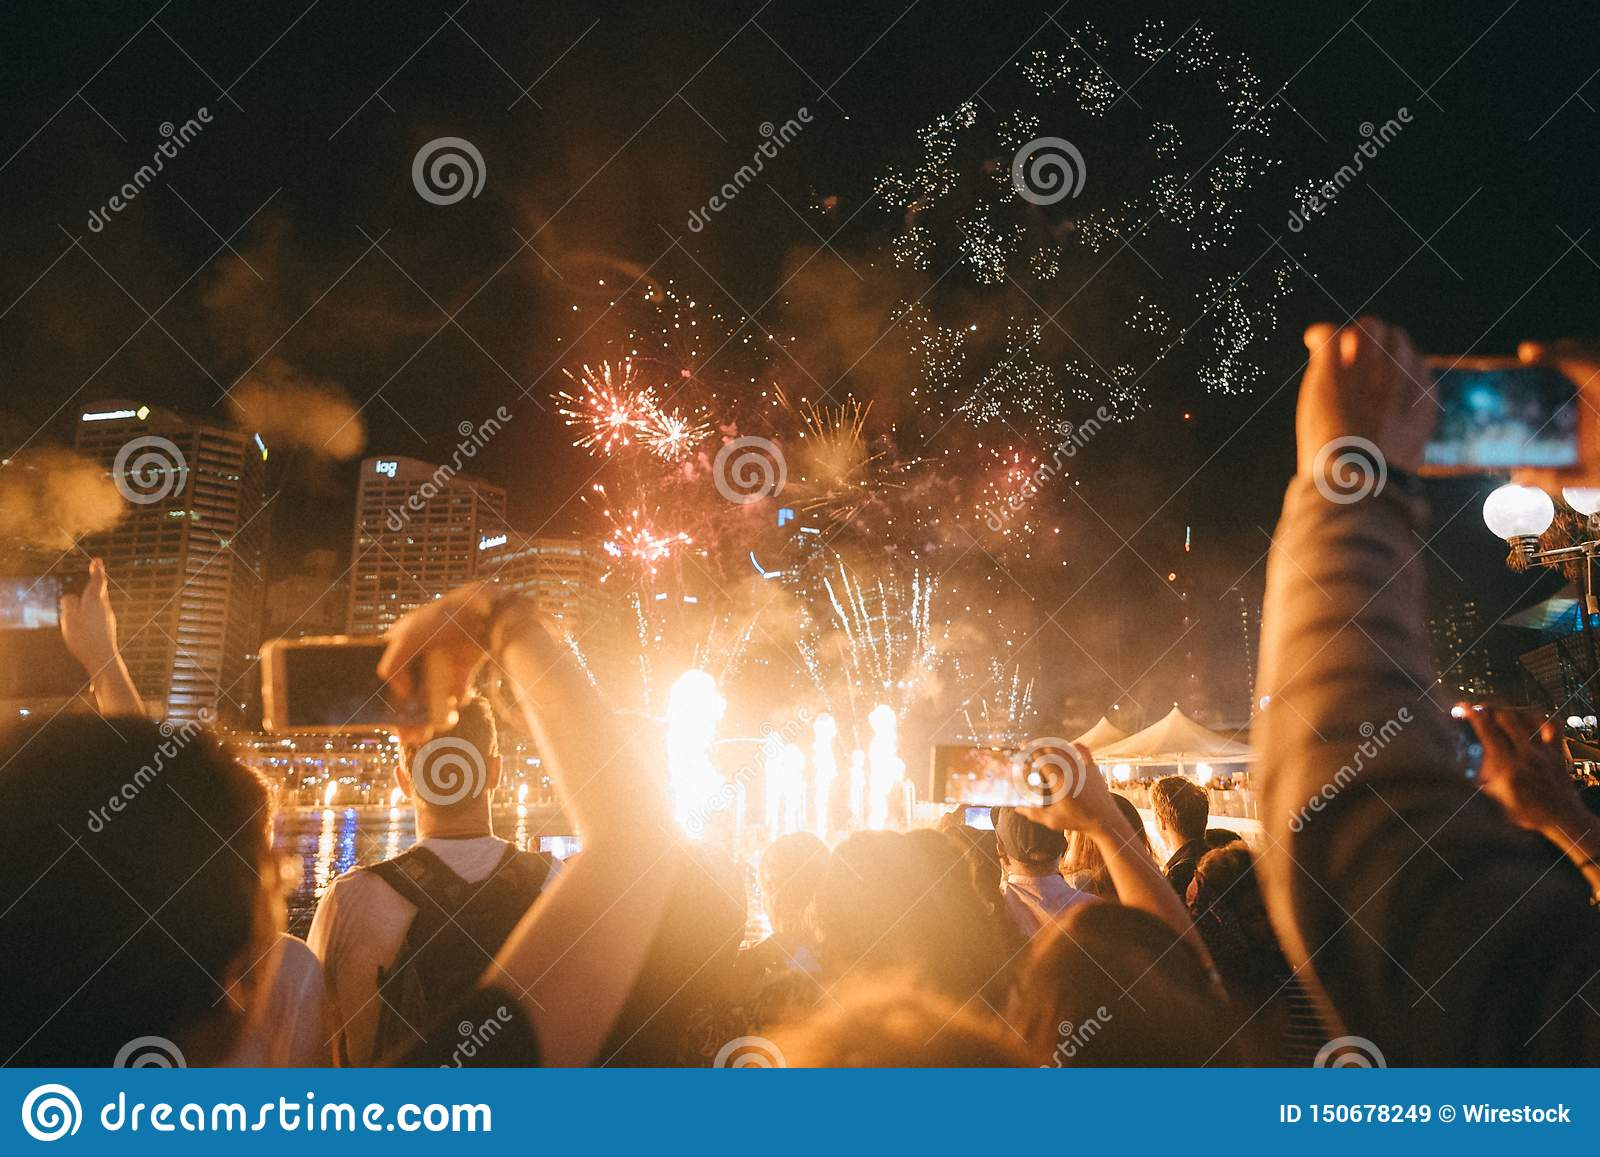 Group of people enjoying bright sparking fireworks at a festival